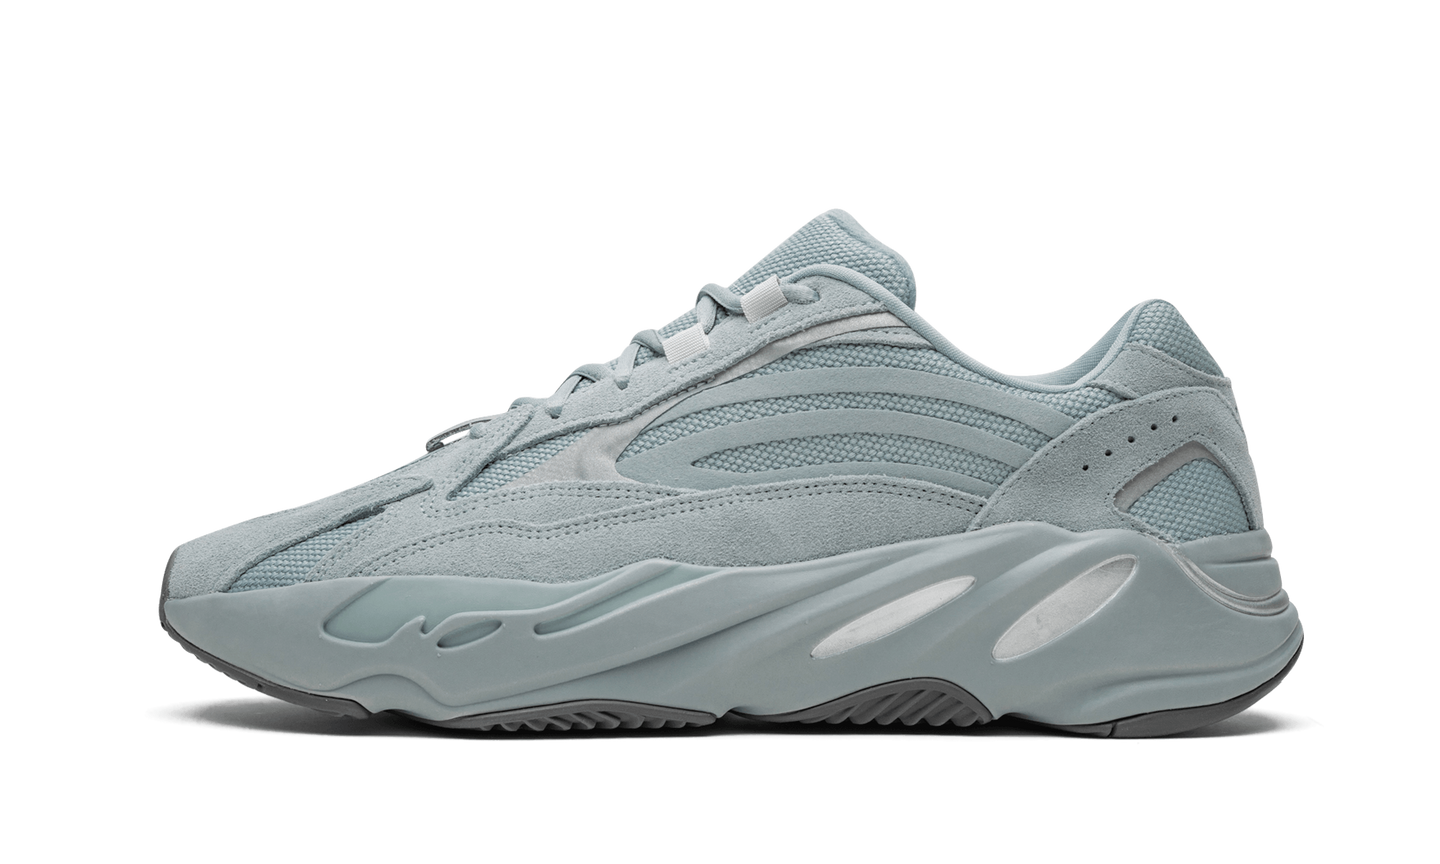 Adidas Yeezy Boost 700 'Hospital Blue' - Street Peek